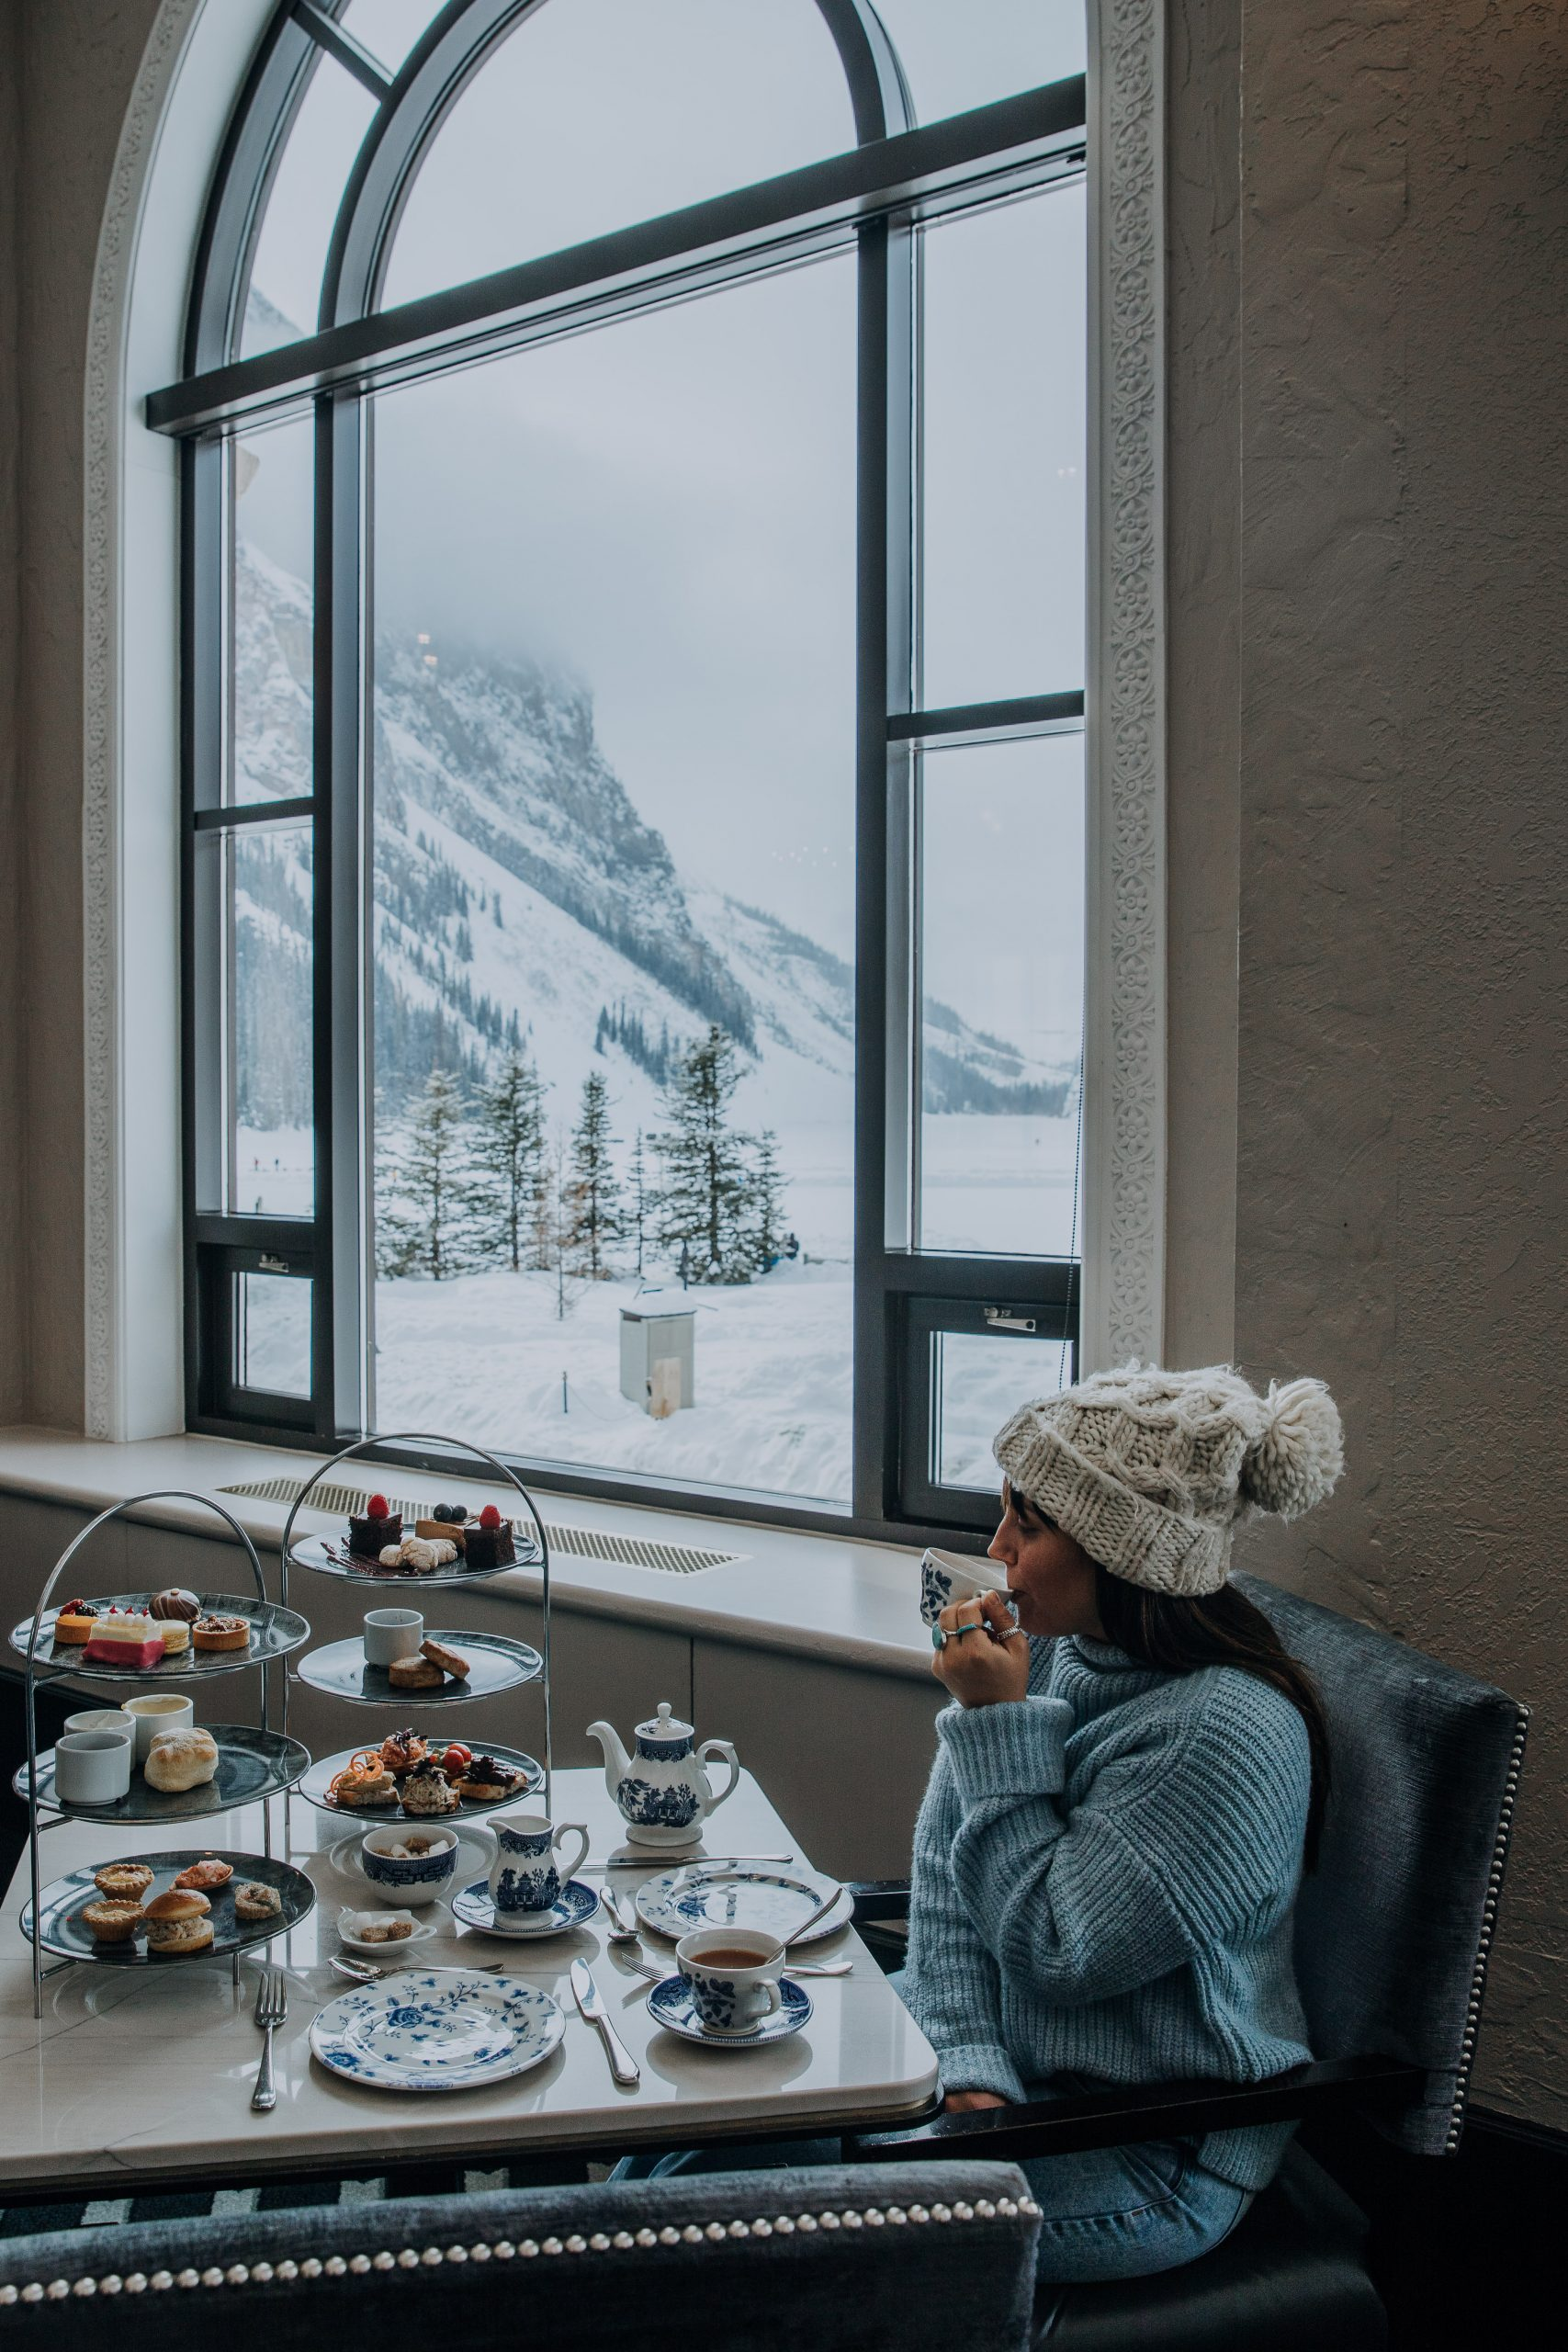 The Ultimate Banff Winter Guide - High Tea at Fairmont Chateau Lake Louise